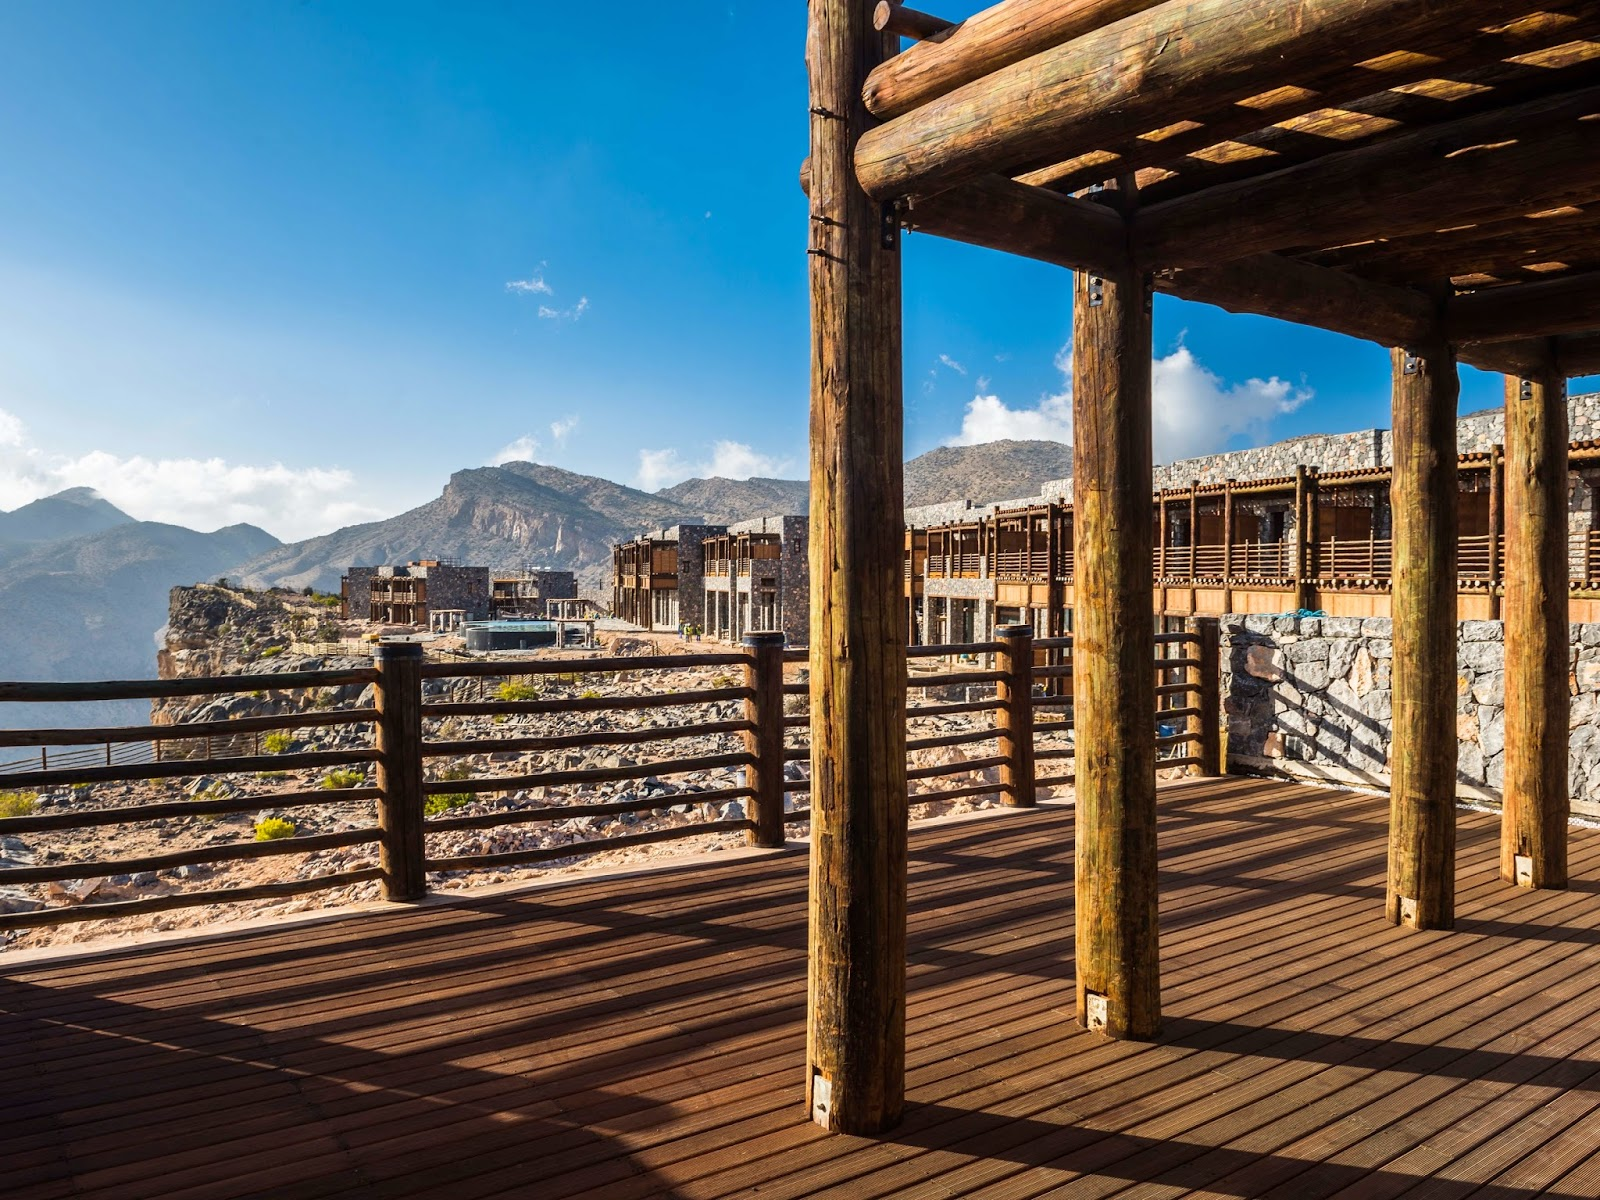 wooden terrace, blue skies and mountain views